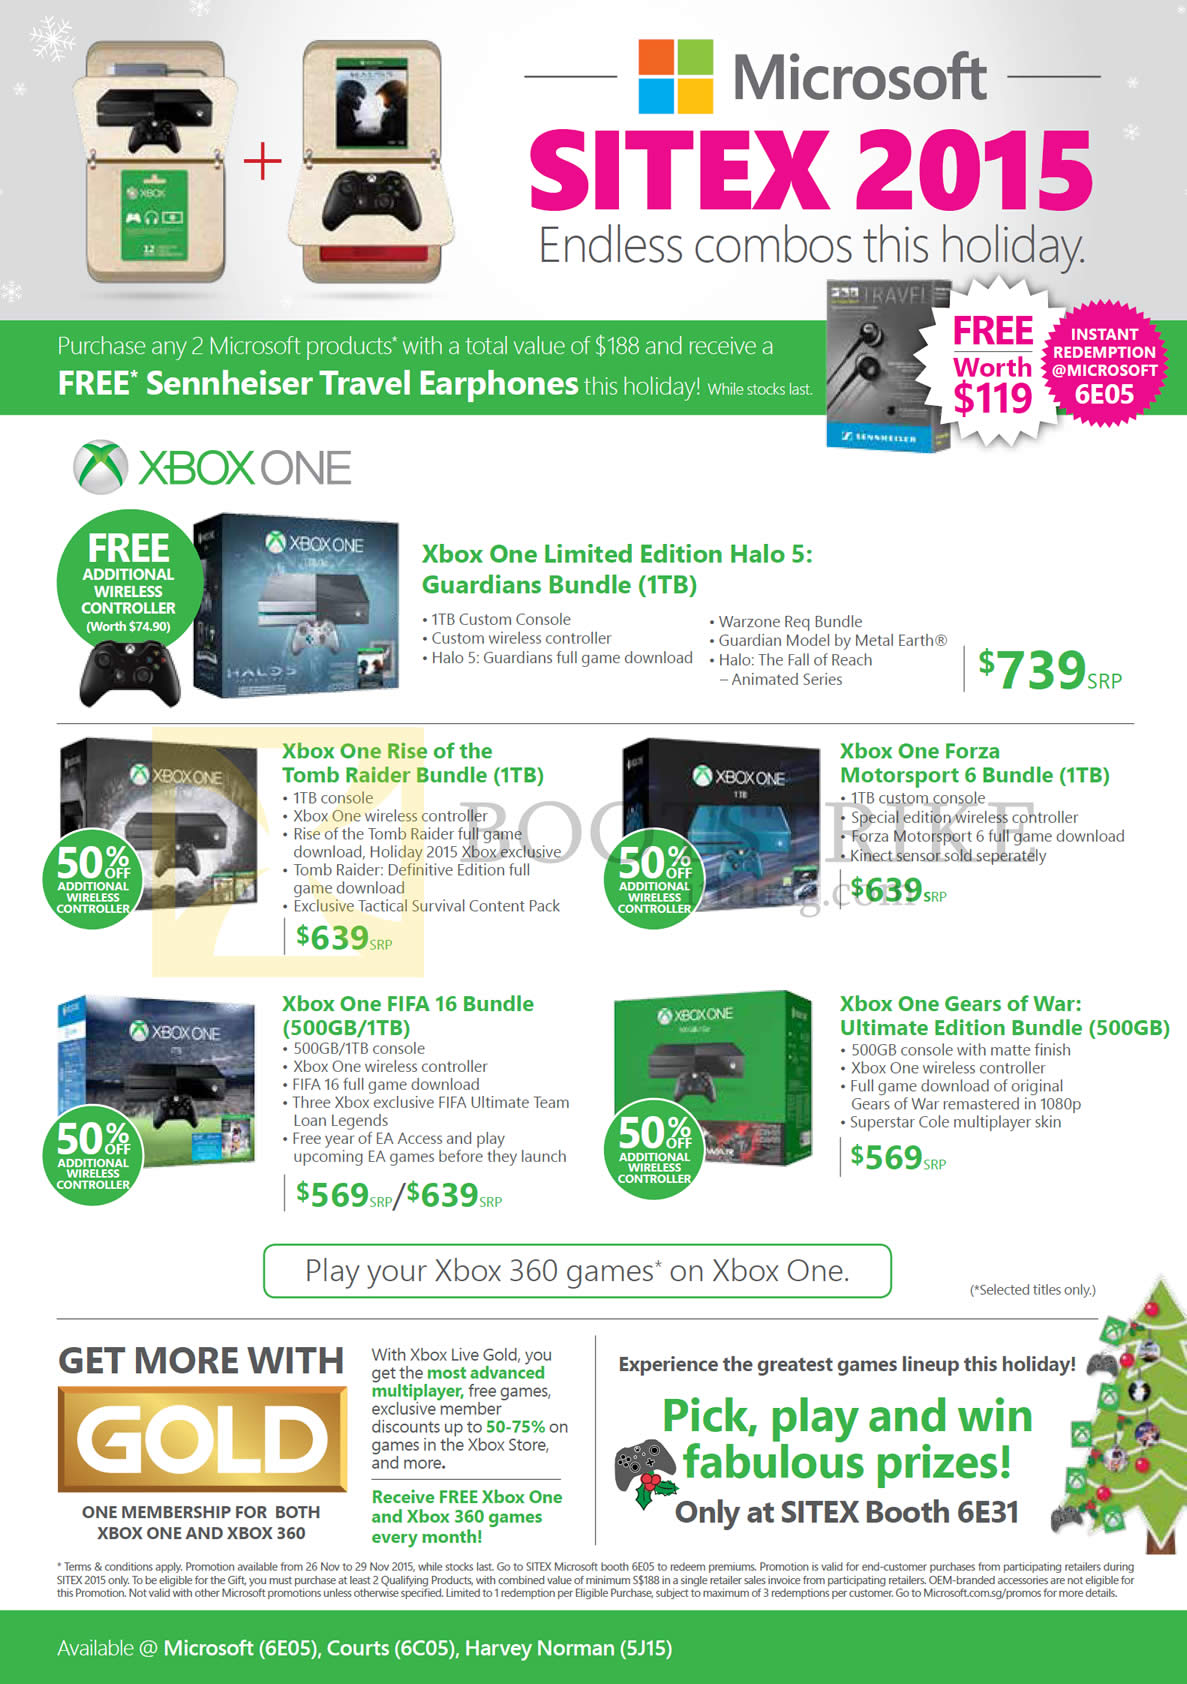 SITEX 2015 price list image brochure of Microsoft Xbox One Gaming Consoles, Halo 5 Bundle, Rise Of The Tomb Raider, Forza Motorspot 6, Fifa 16, Gears Of War Ultimate Edition